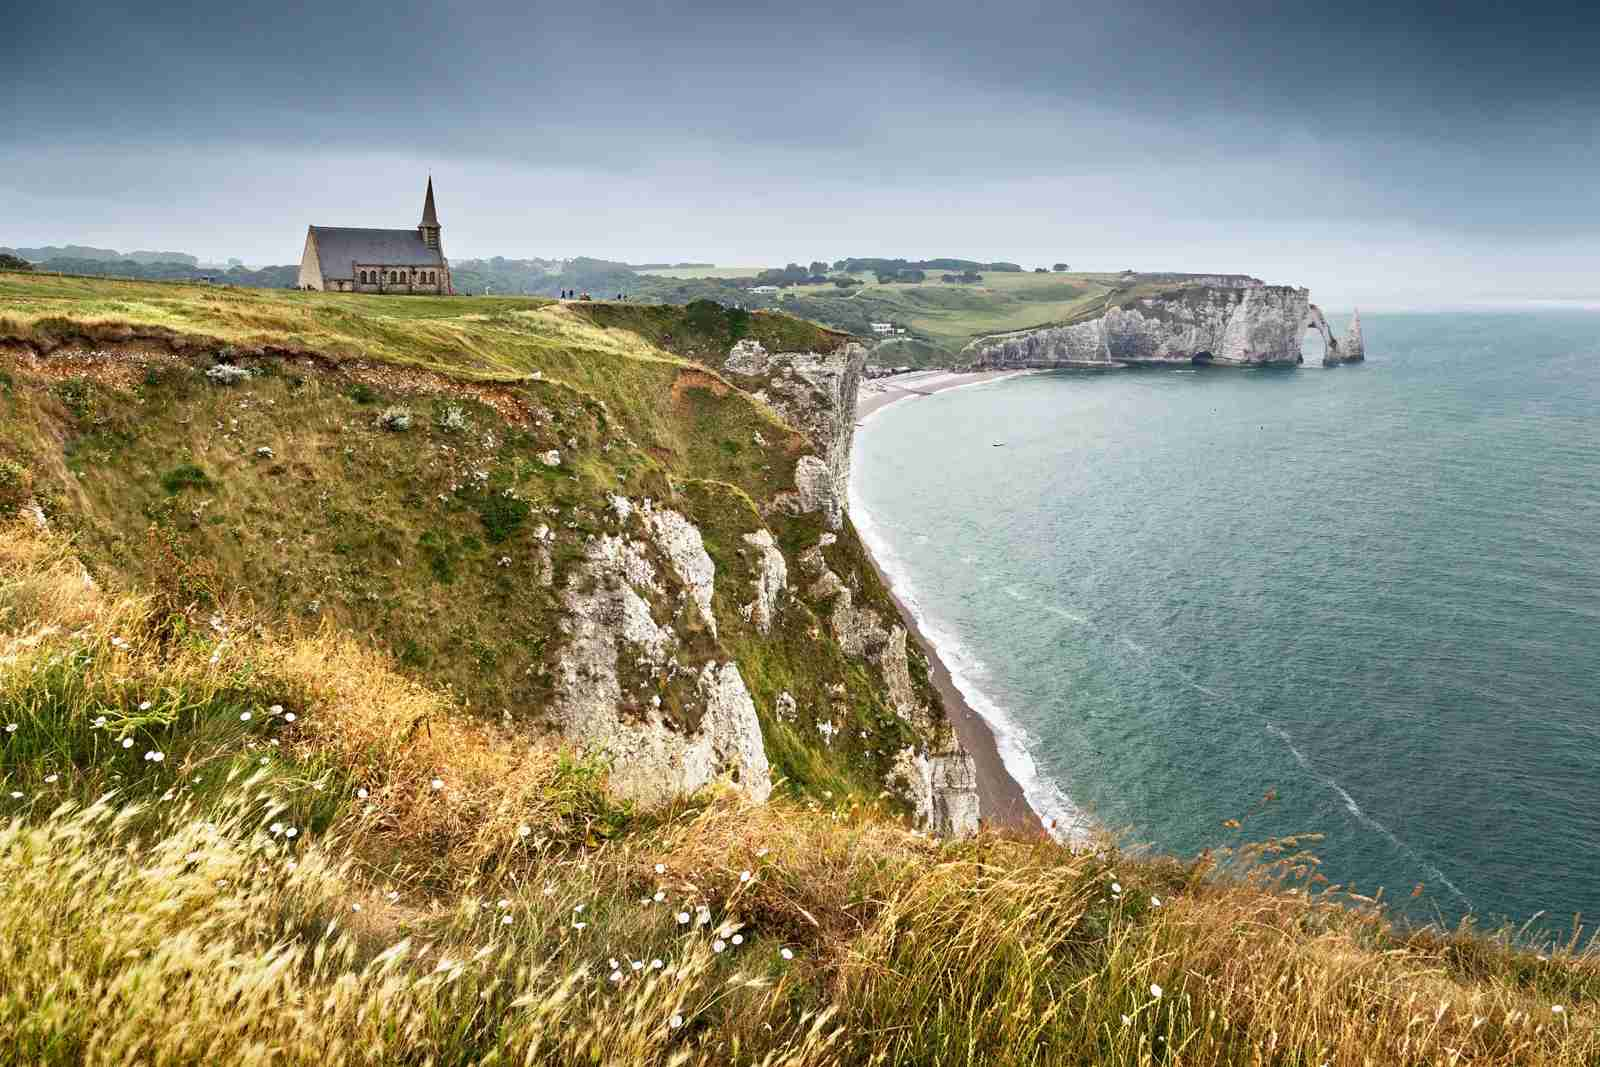 Étretat on the coast of Normandy in France. (Photo by Ellen van Bodegom/Getty Images)